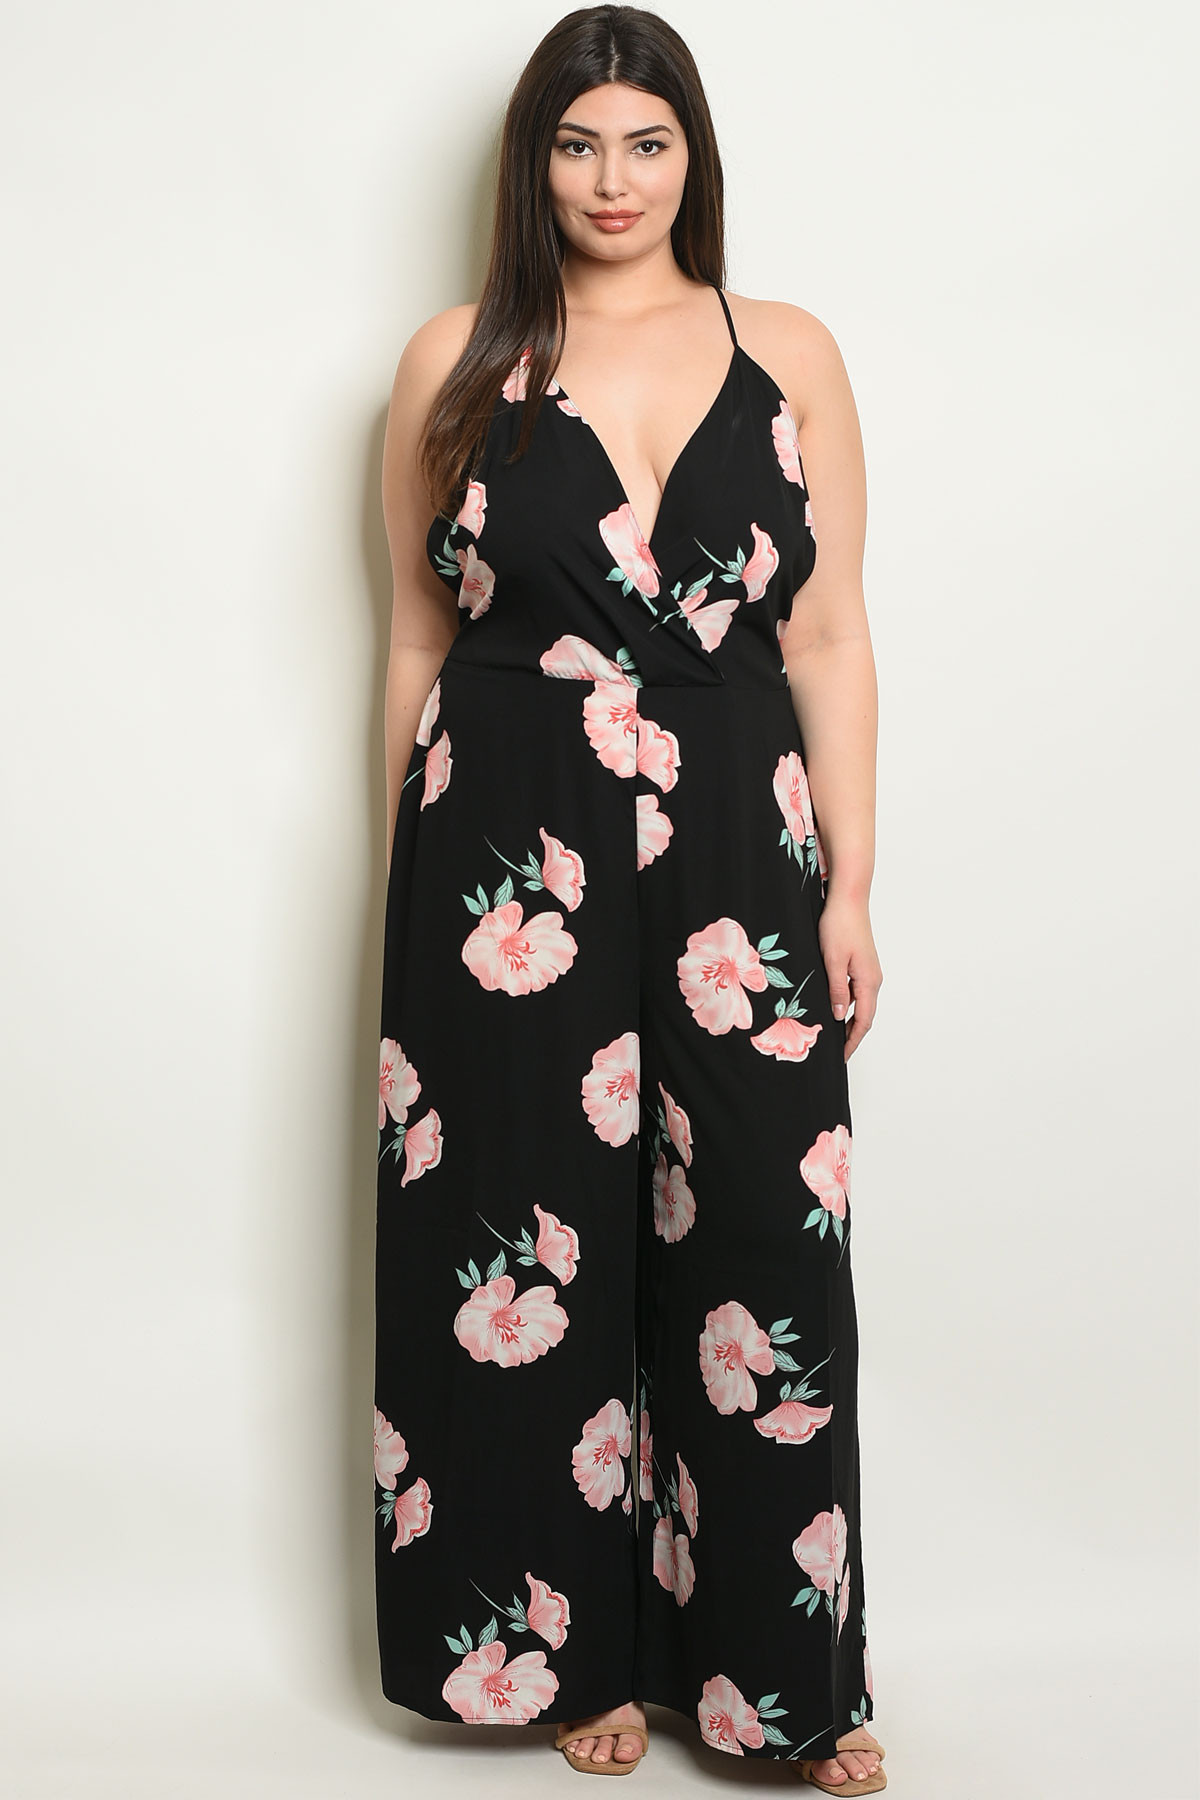 novel style complete in specifications reputation first C40-A-2-J6482X BLACK FLORAL PLUS SIZE JUMPSUIT 2-3